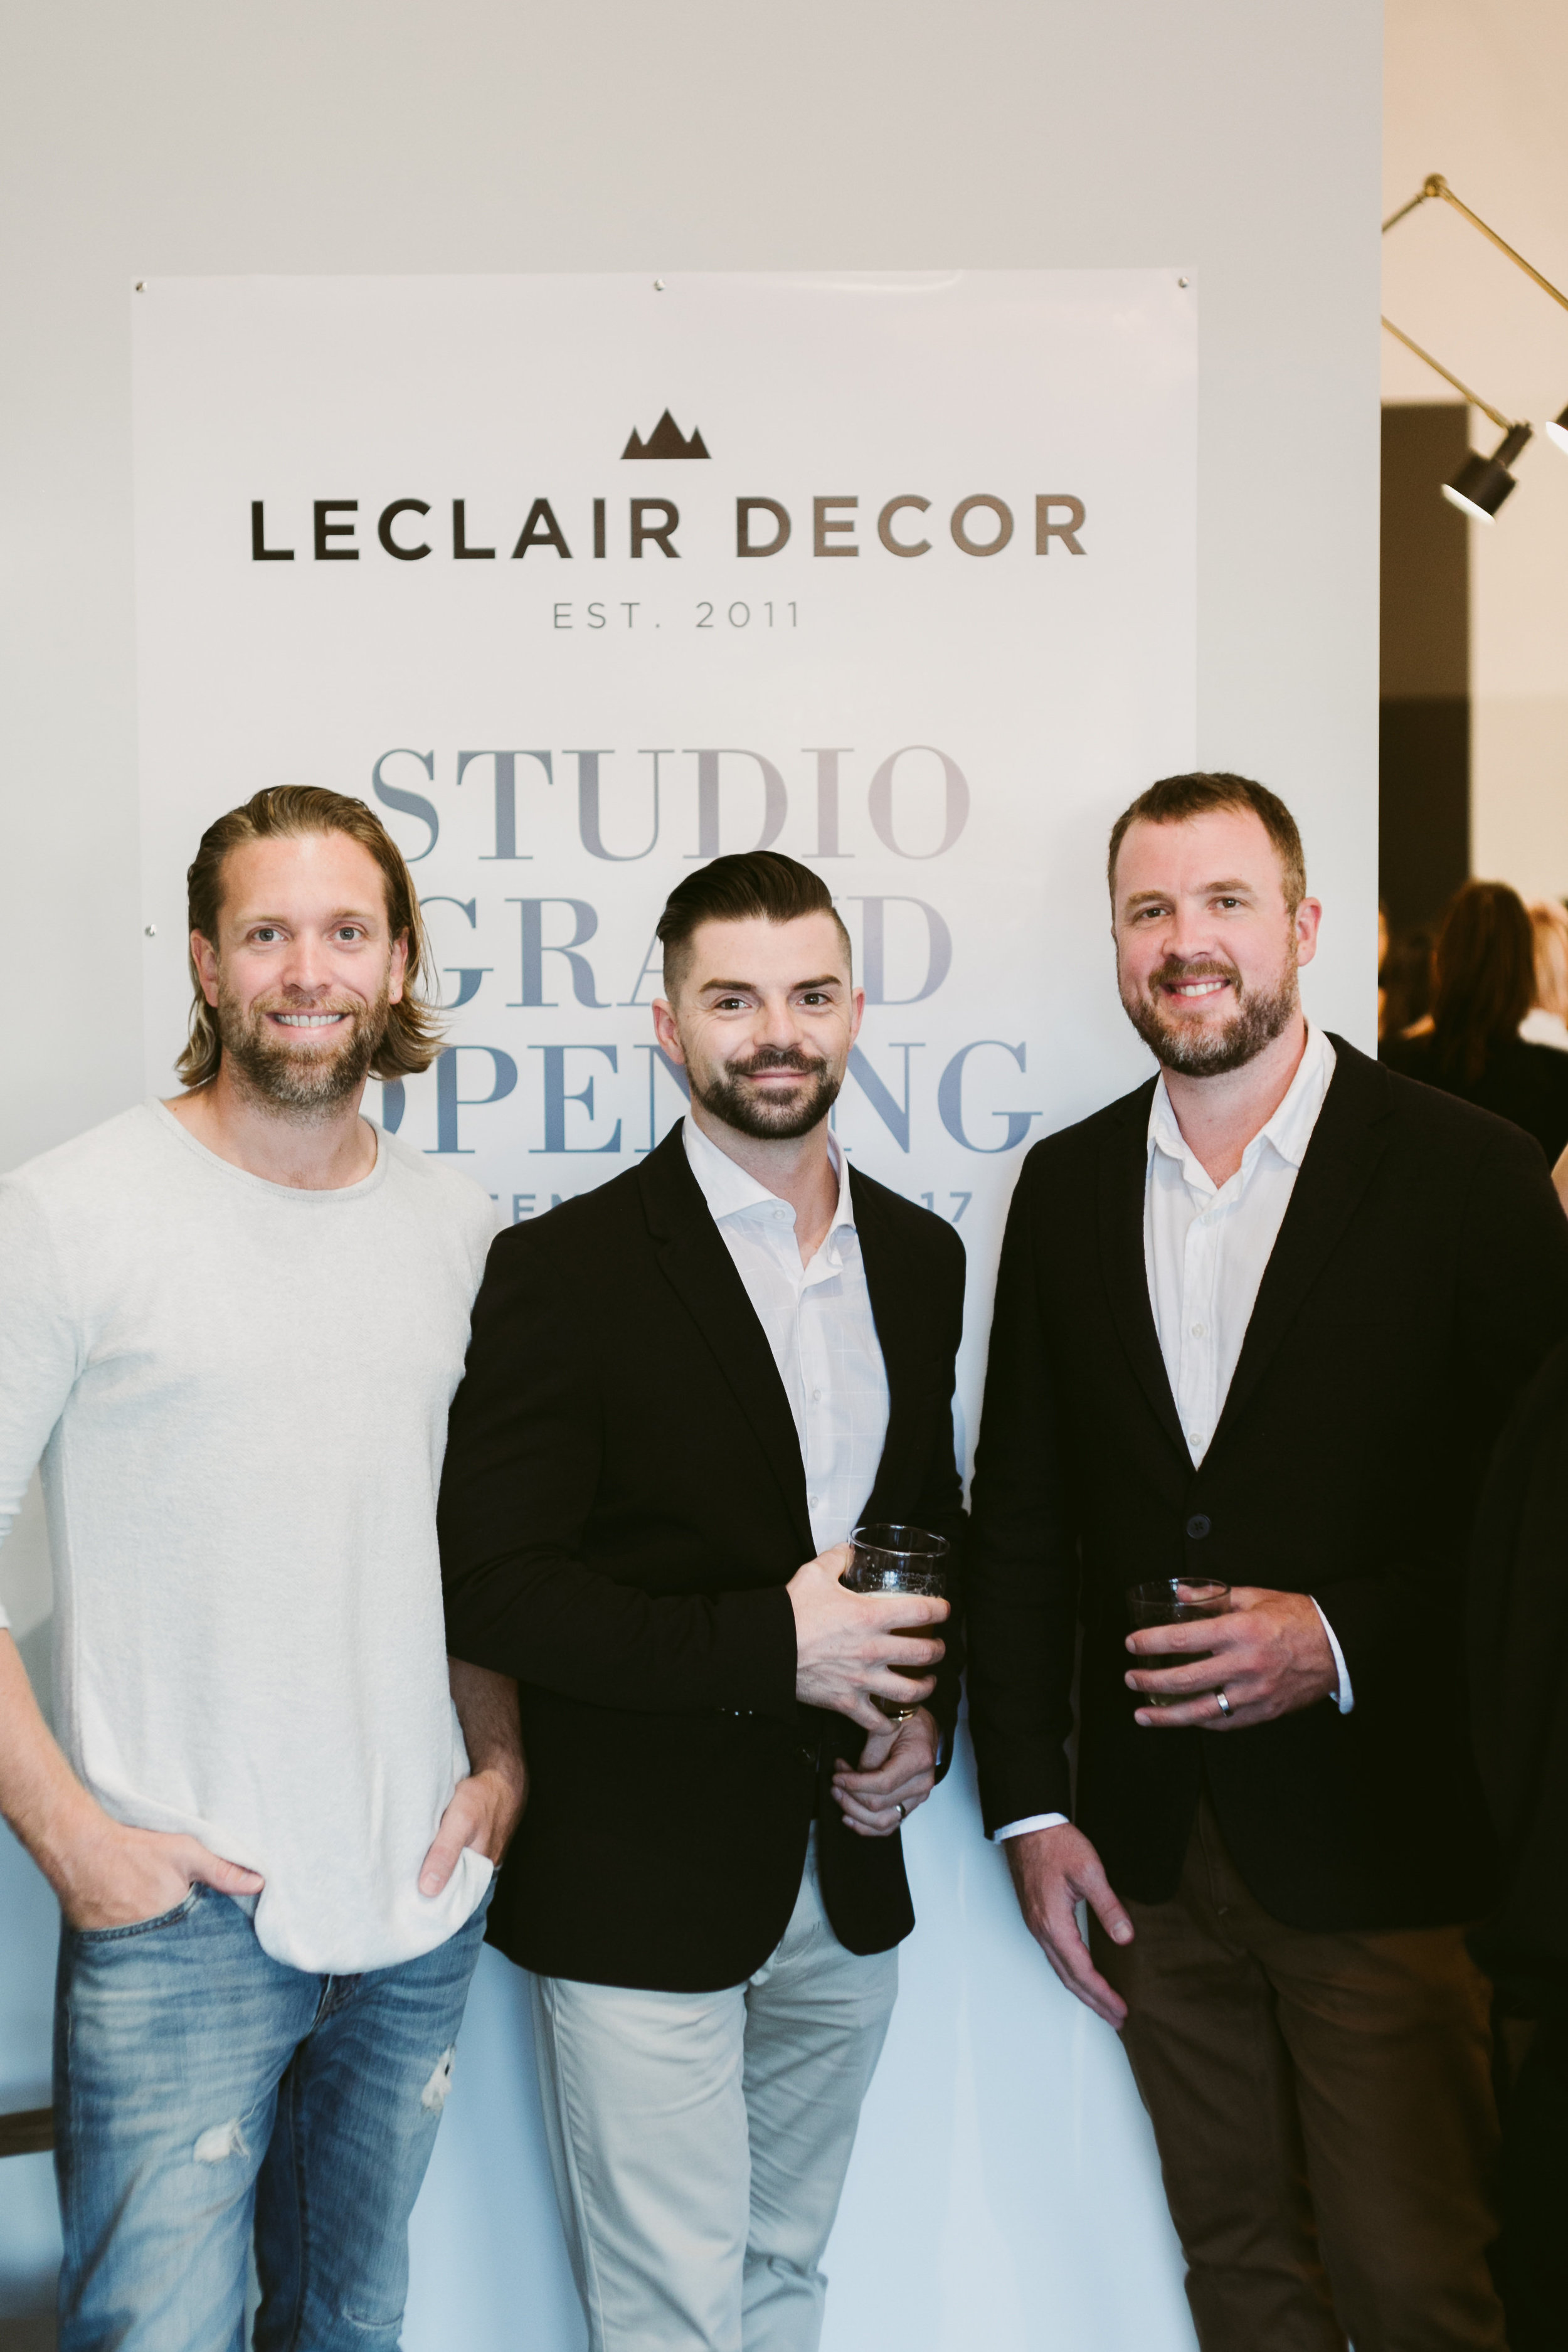 View More: http://scotthwilson.pass.us/leclair-decor-grand-opening